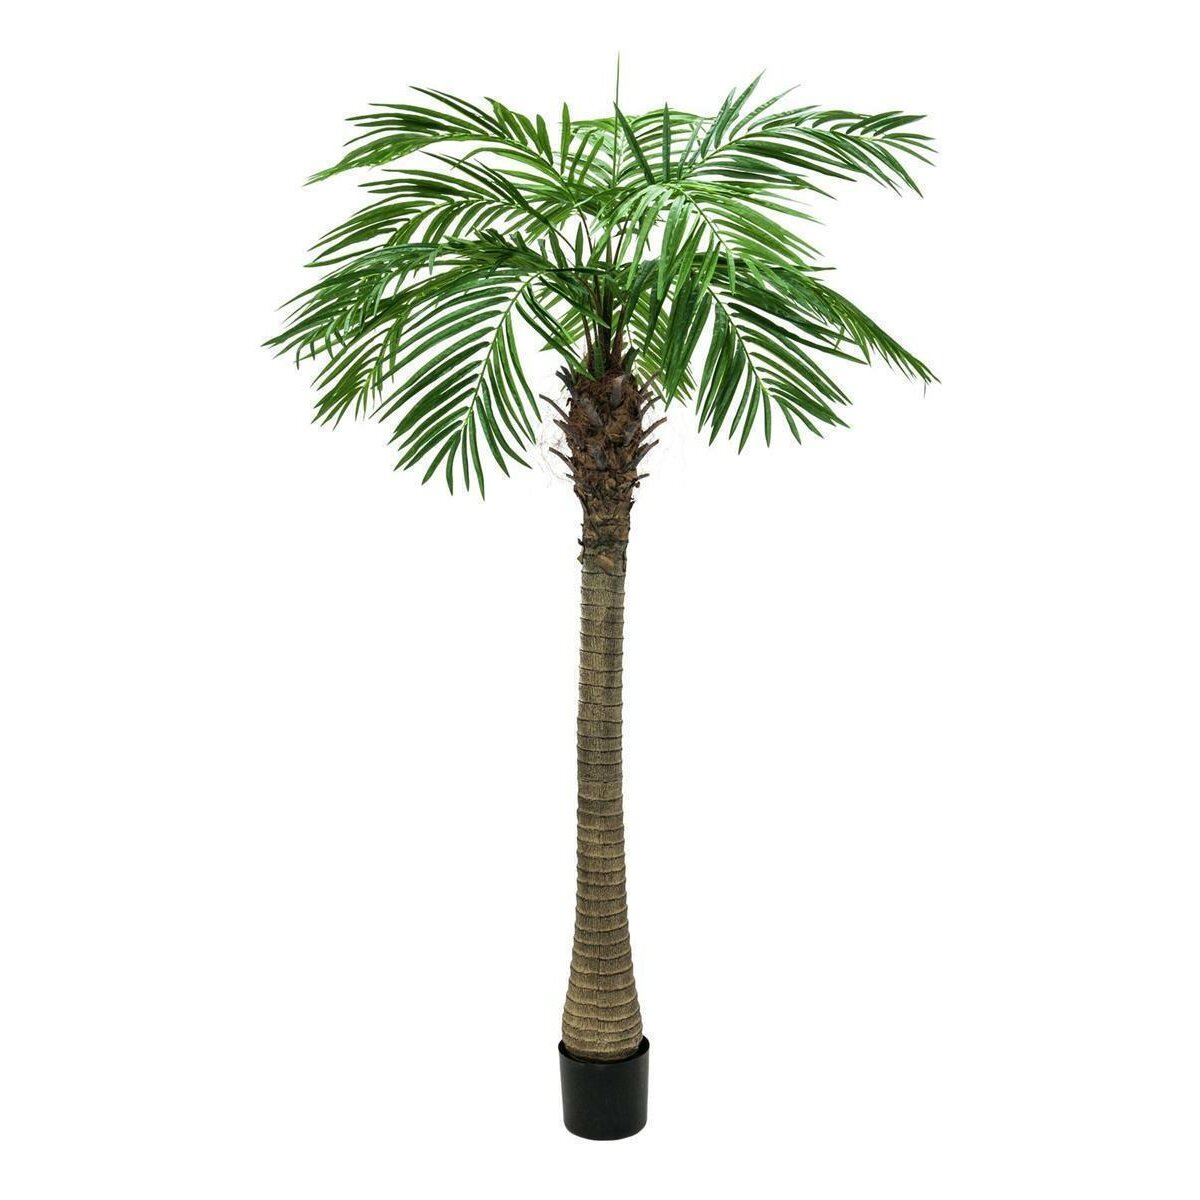 Europalms Phoenix palm tree luxor, 300cm